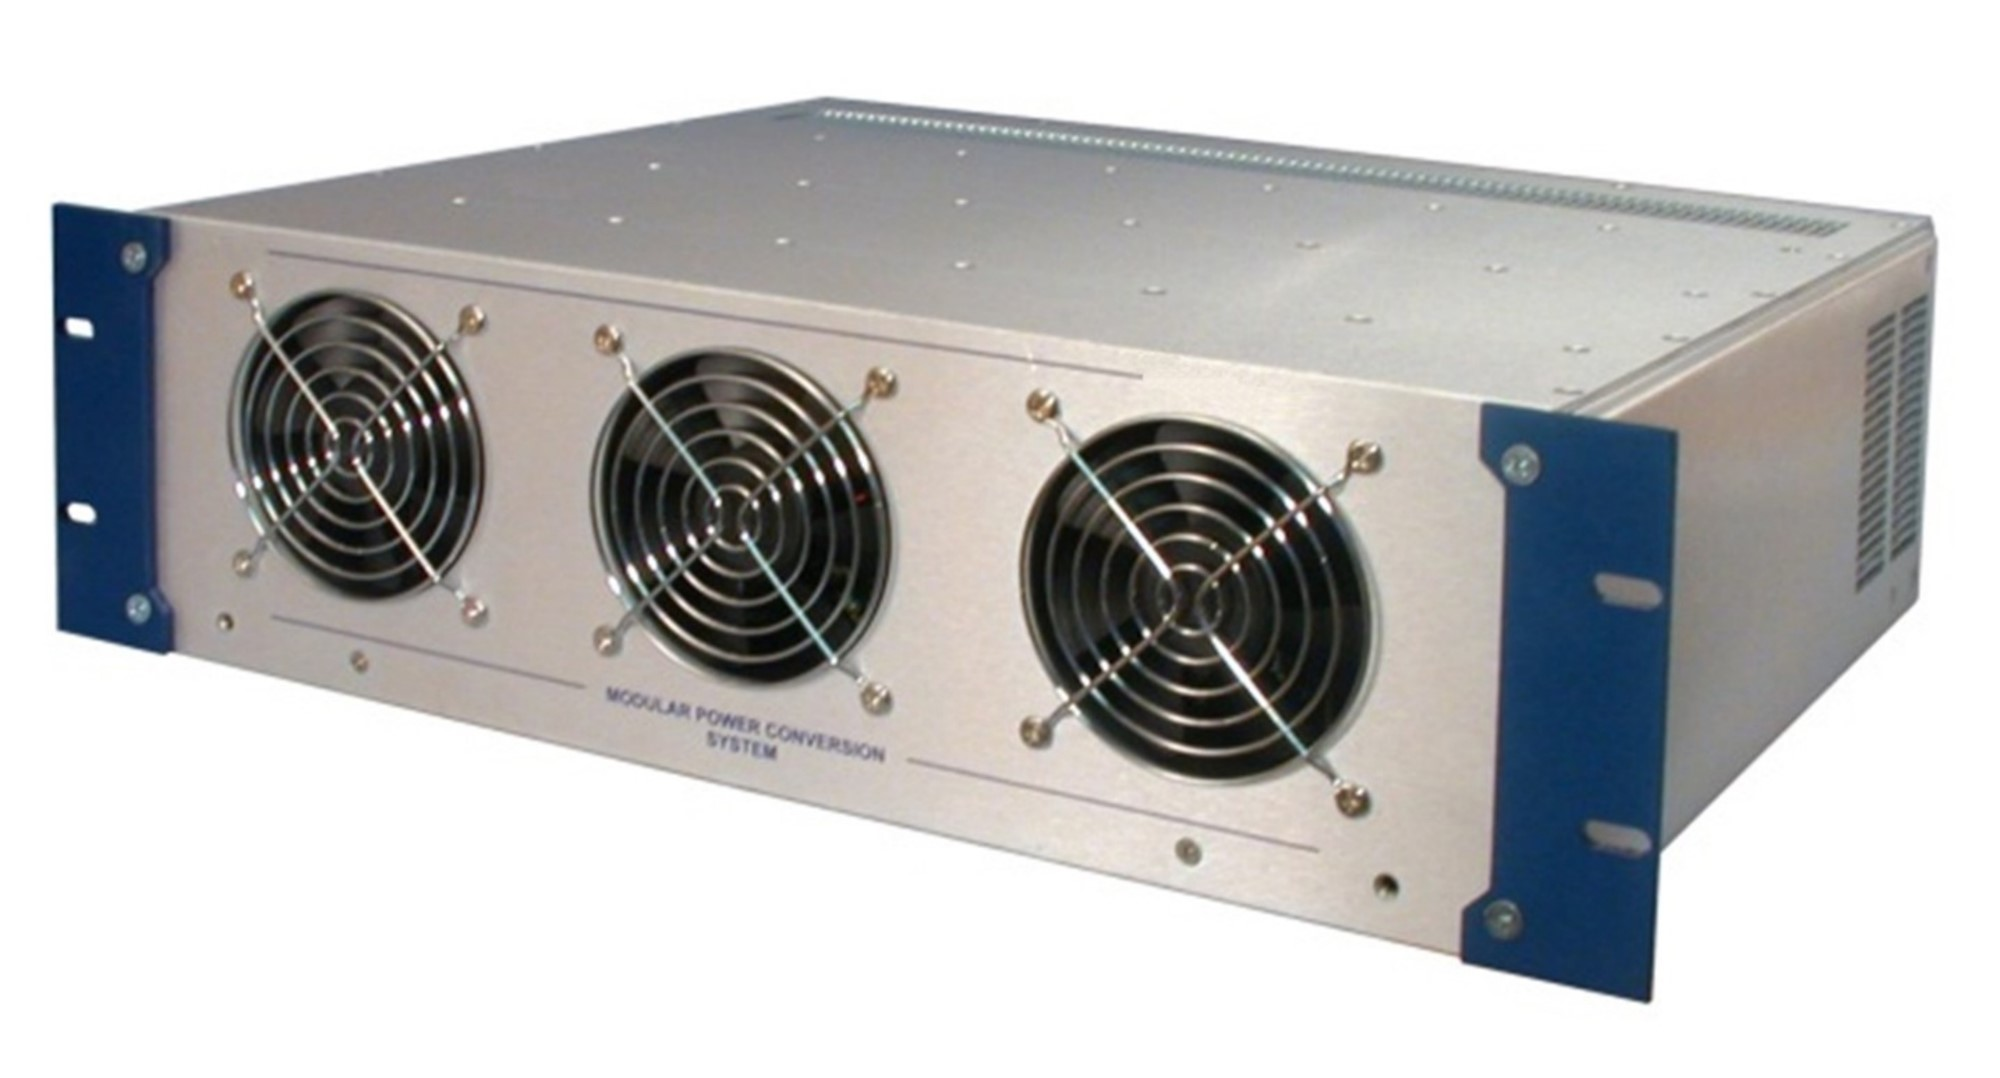 EPS/FTP/T AC/AC Frequency Converter 1500-6000 VA